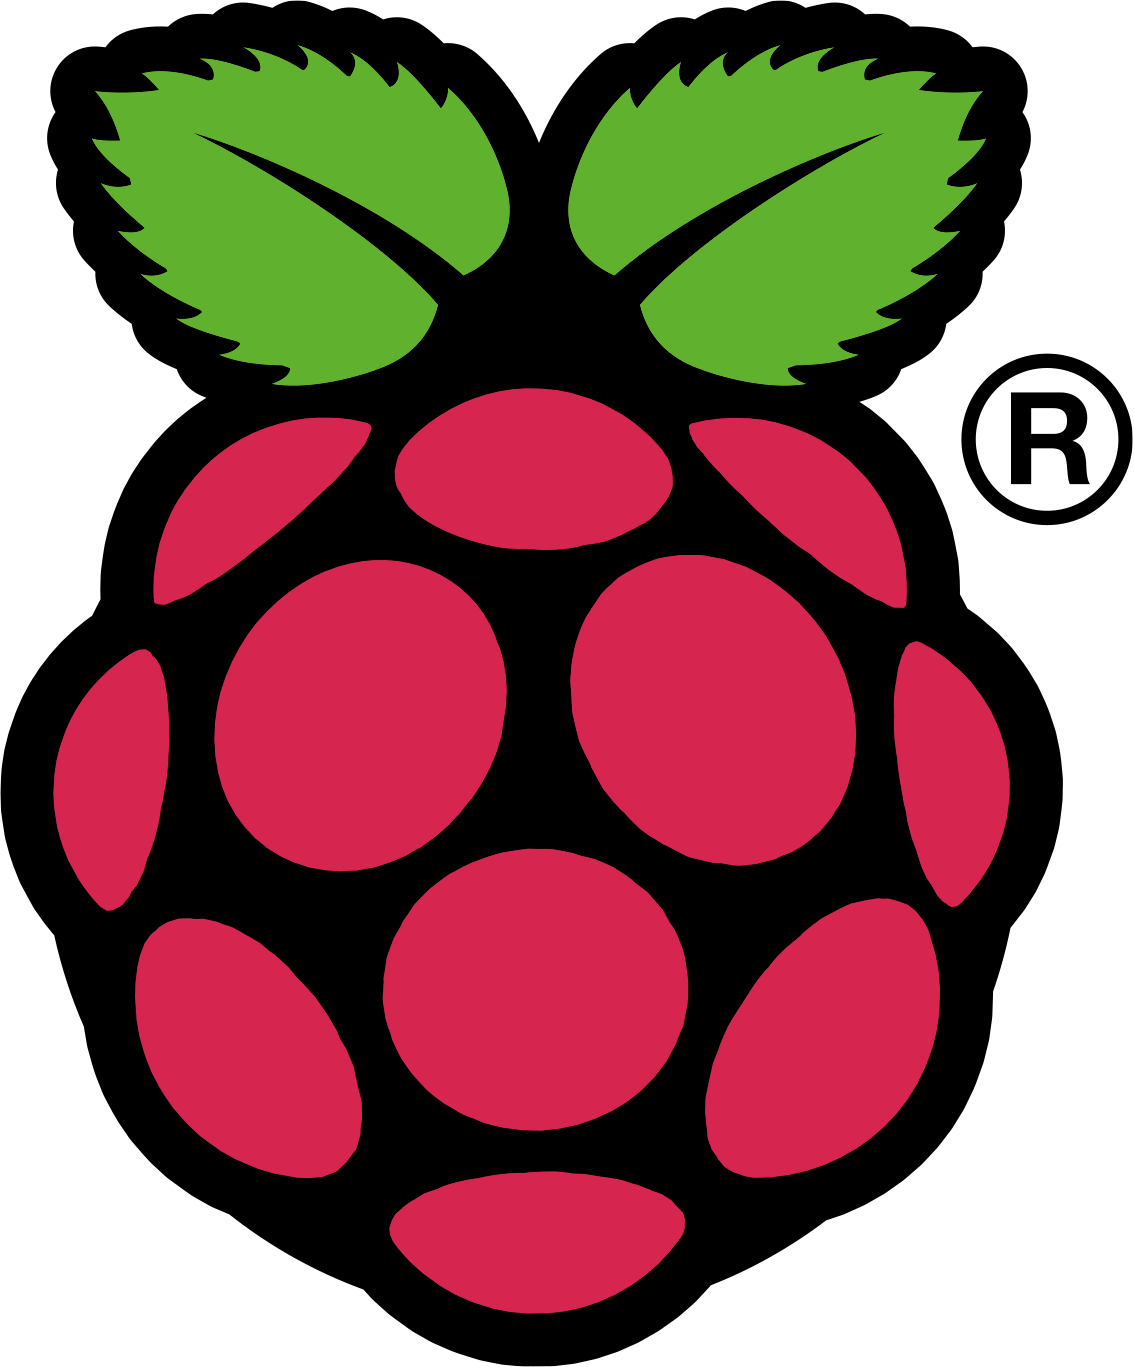 The Raspberry Pi 2 has arrived